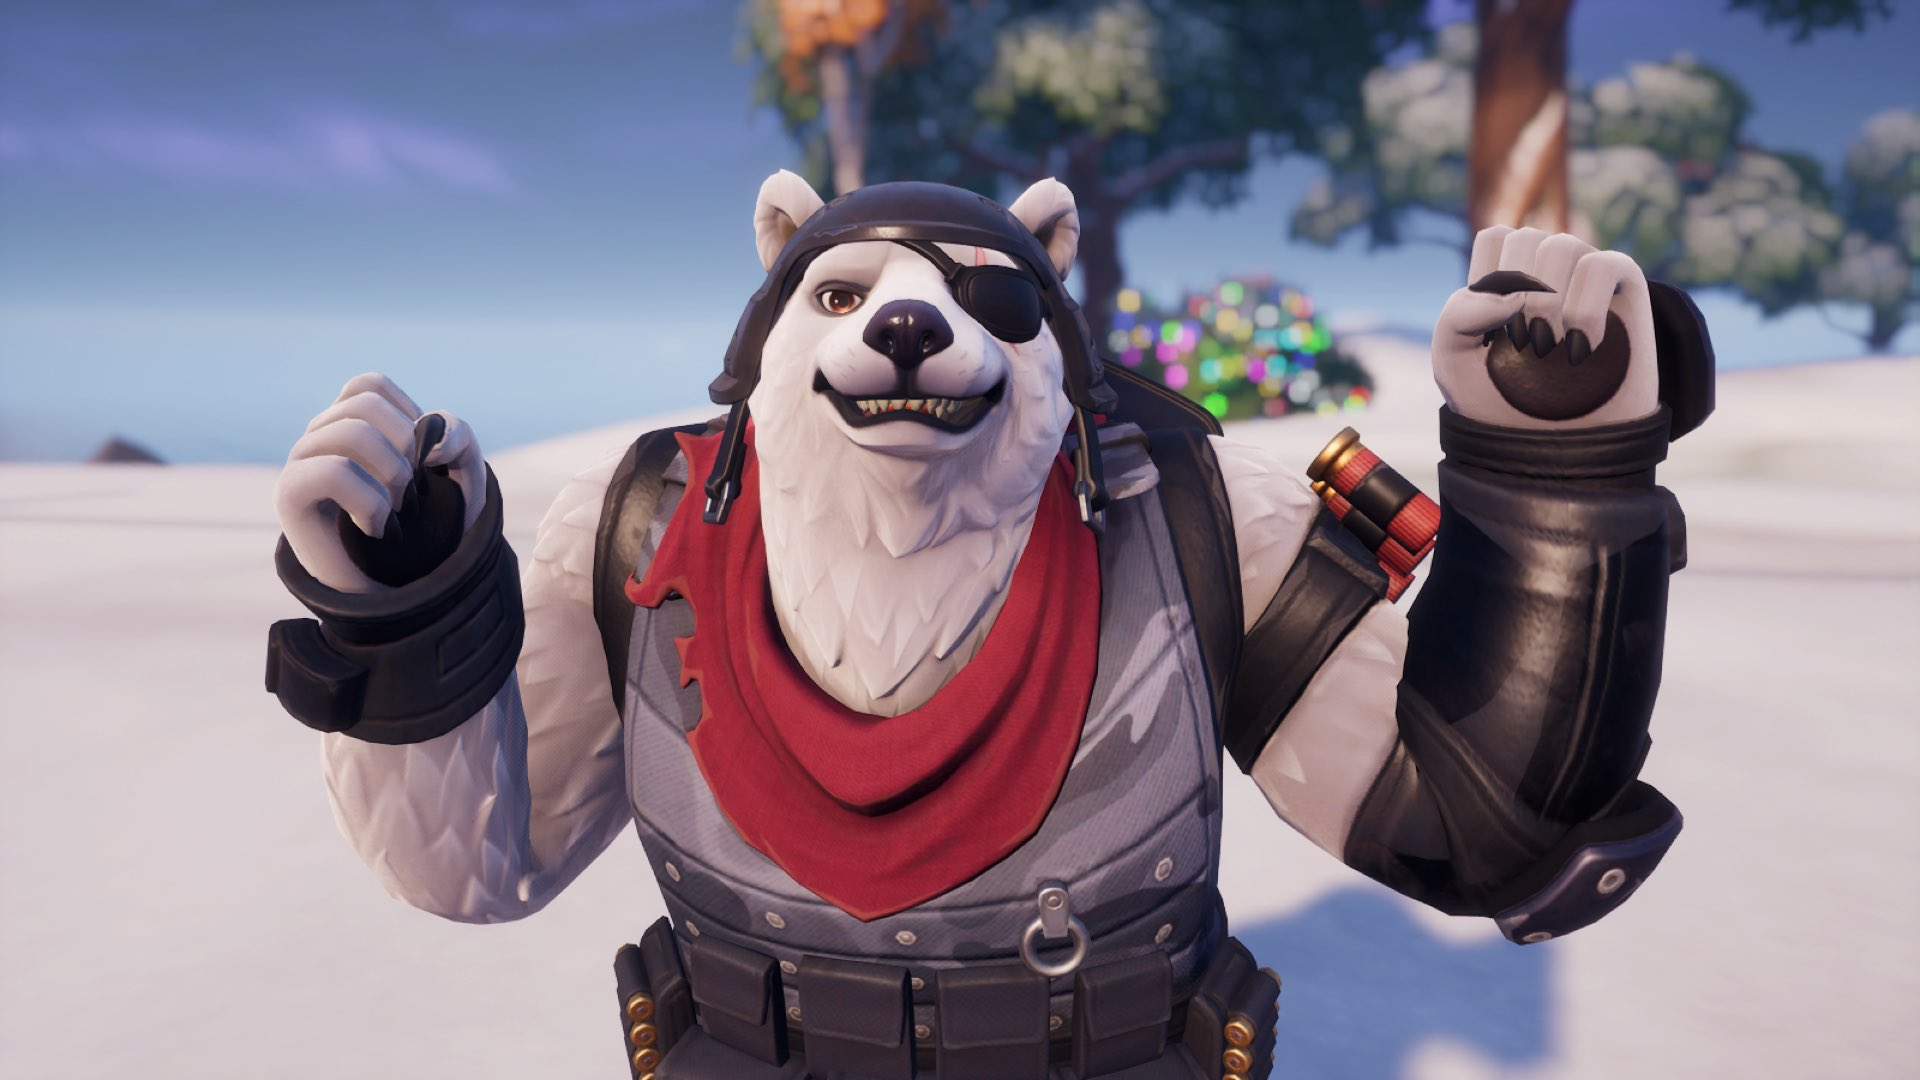 Polar Patroller Fortnite Wallpapers All Details You Have To Know Mega Themes